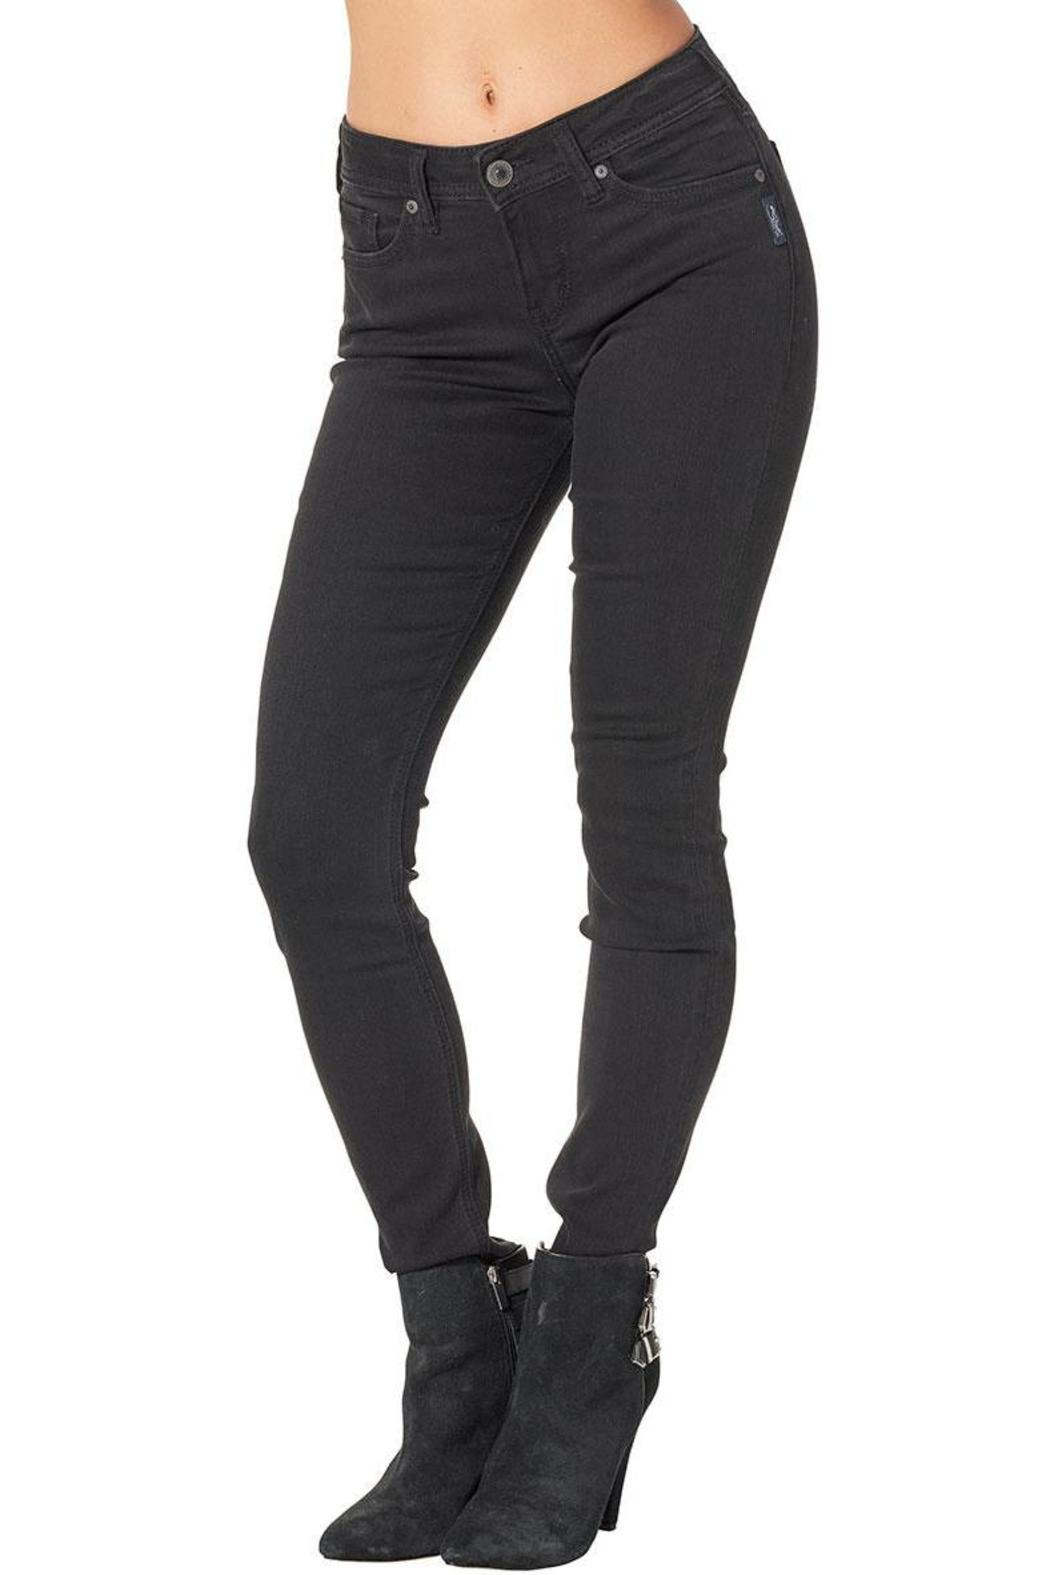 Silver Jeans Co. Aiko Skinny Jeans - Main Image